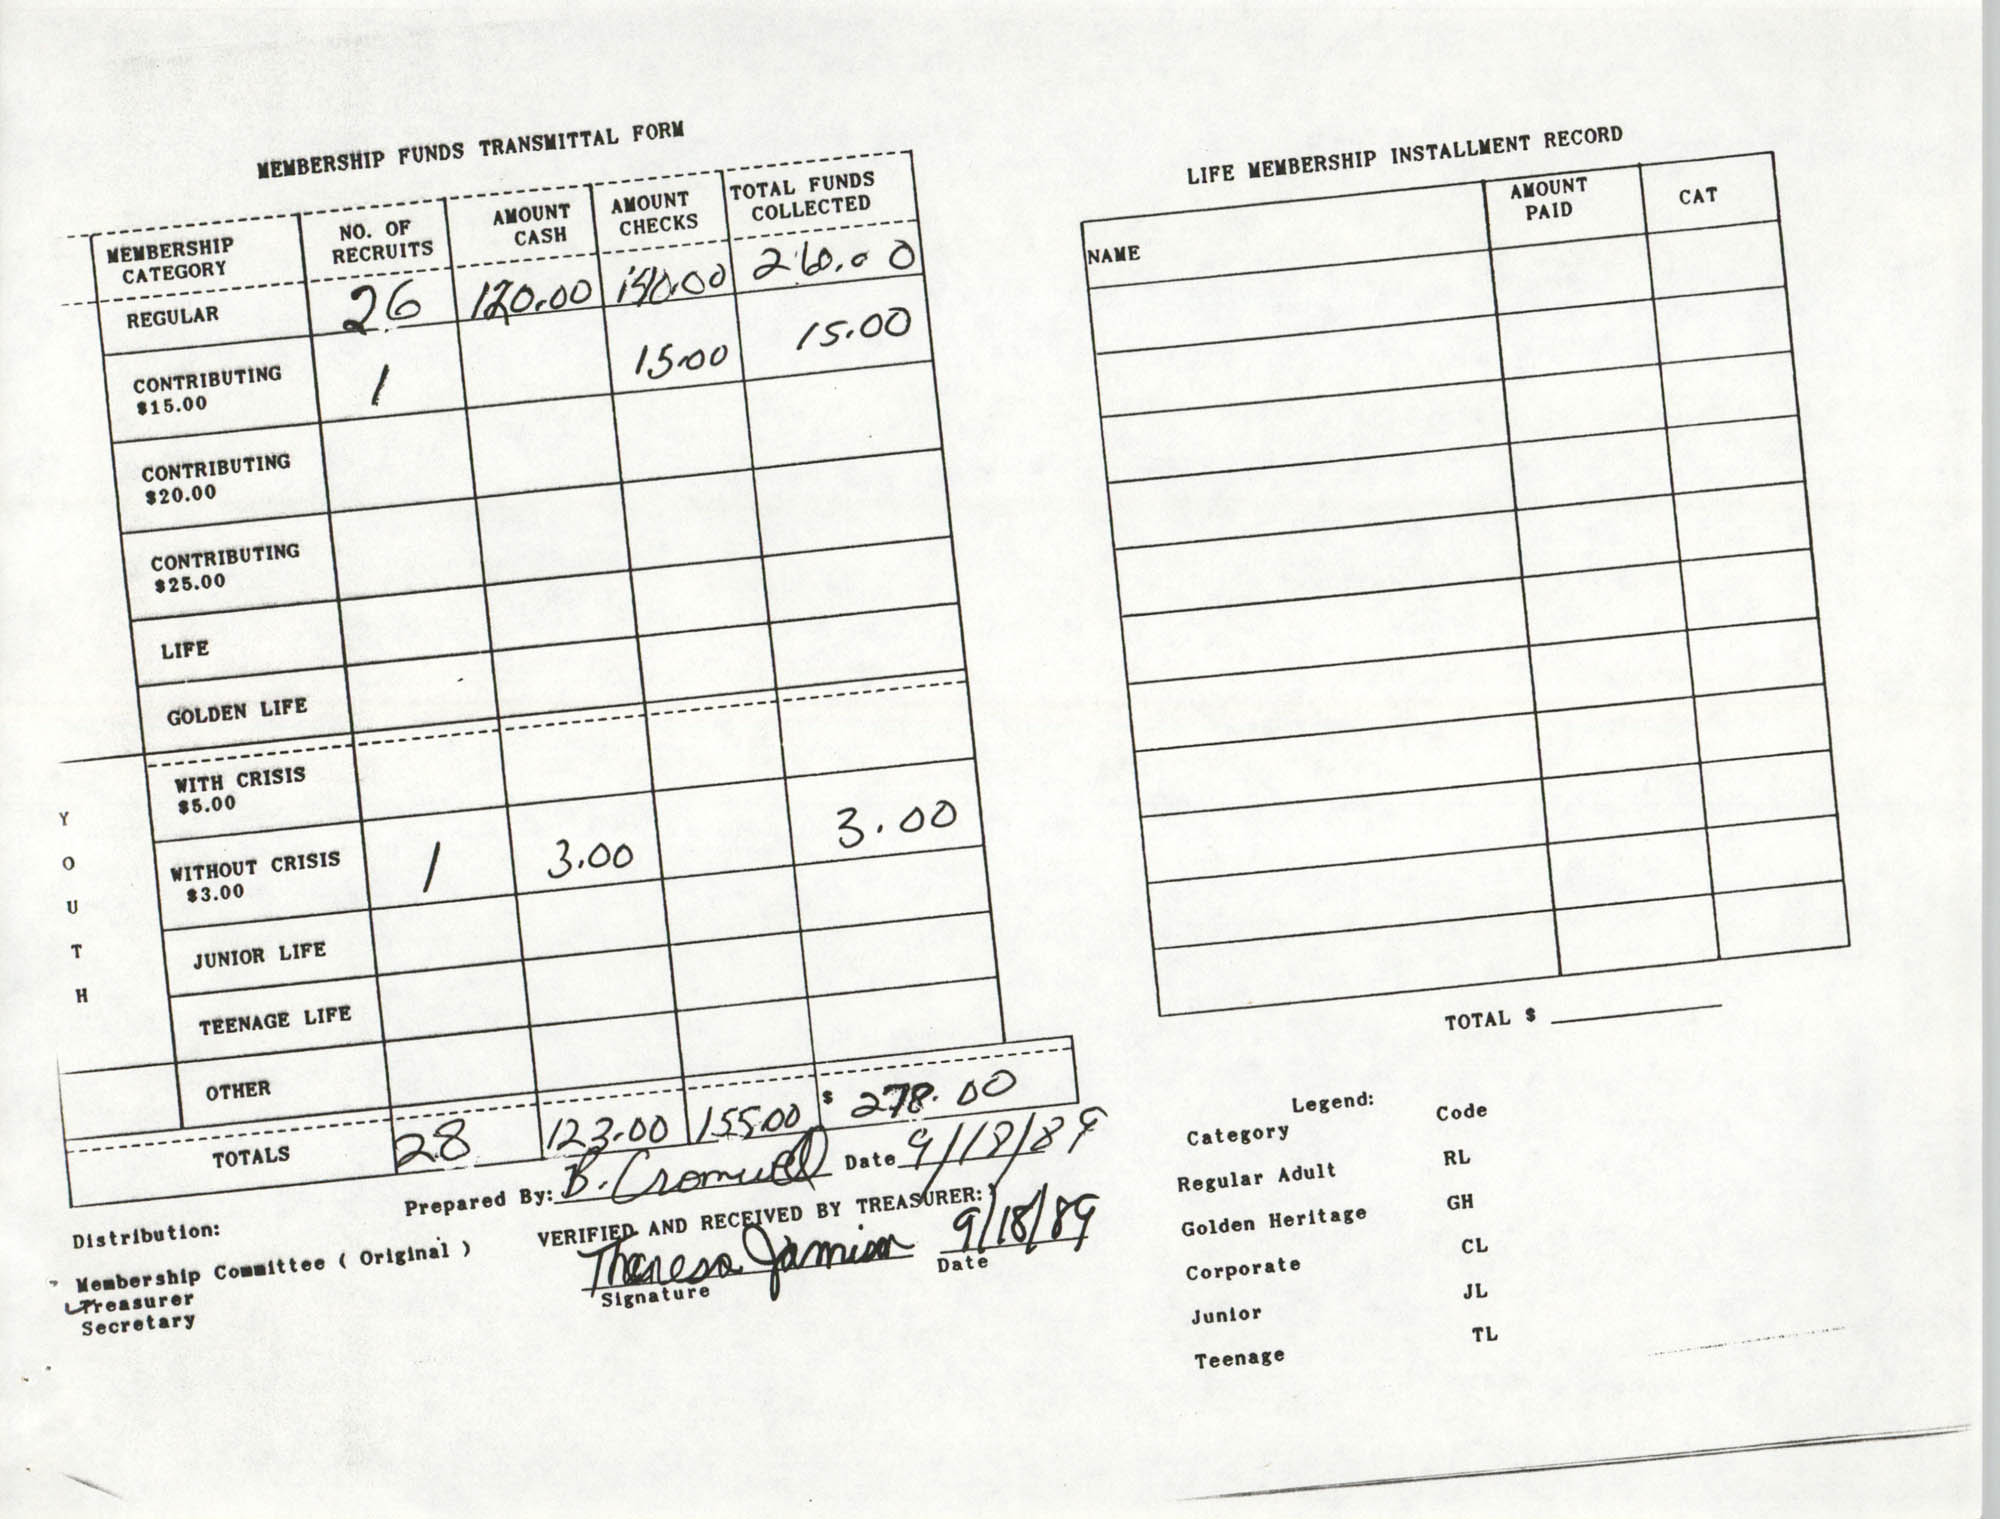 Charleston Branch of the NAACP Funds Transmittal Forms, September 1989, Page 6